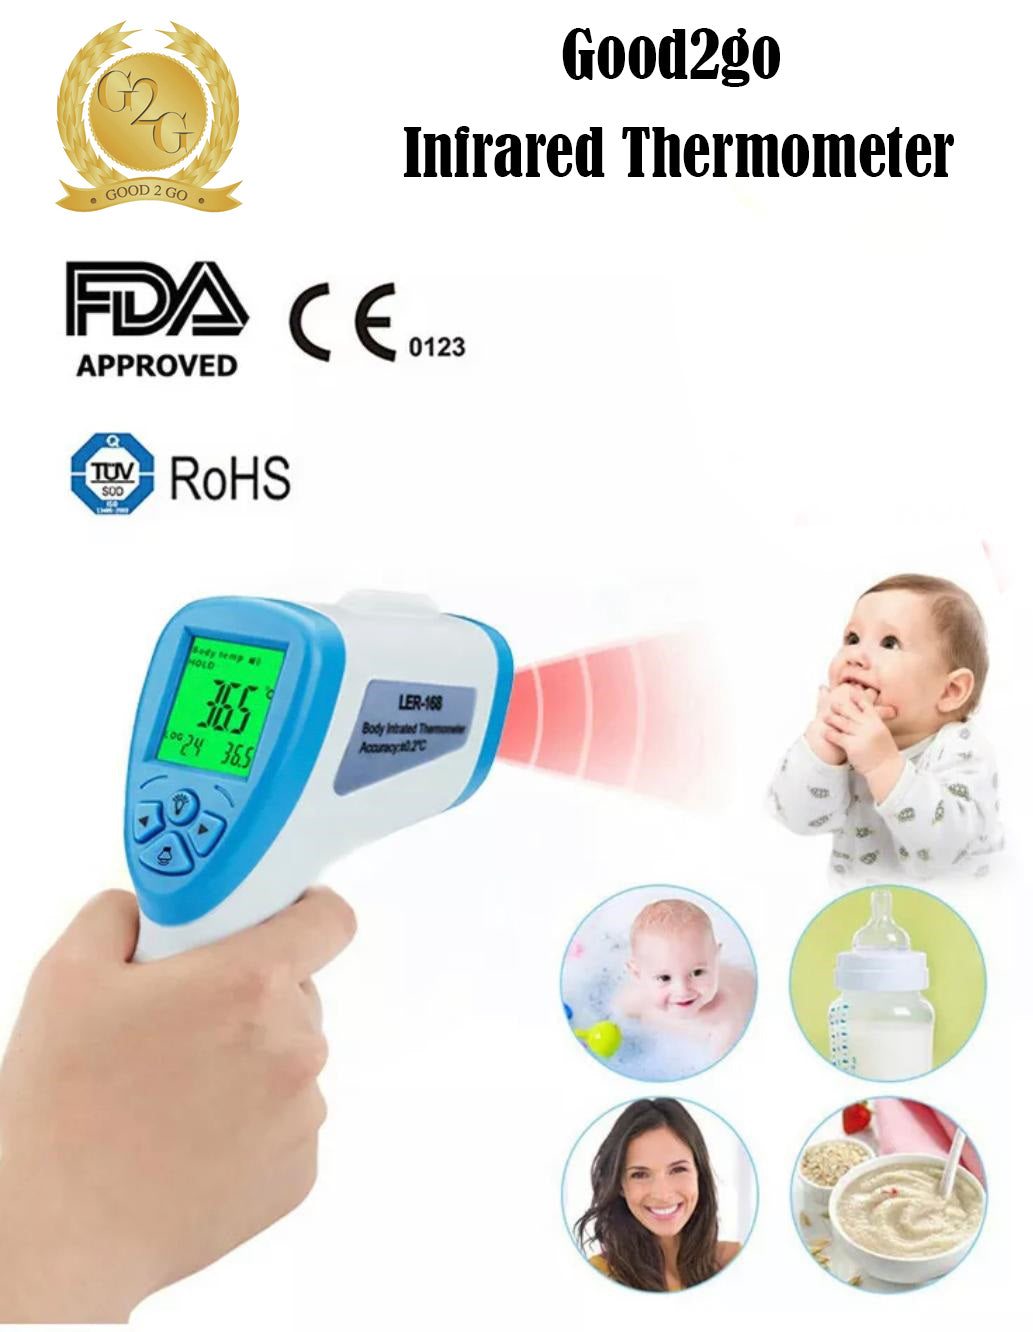 Good2go Infrared No Contact Thermometer (6 Month Warranty Included) Free 1-2 Day Priority Delivery